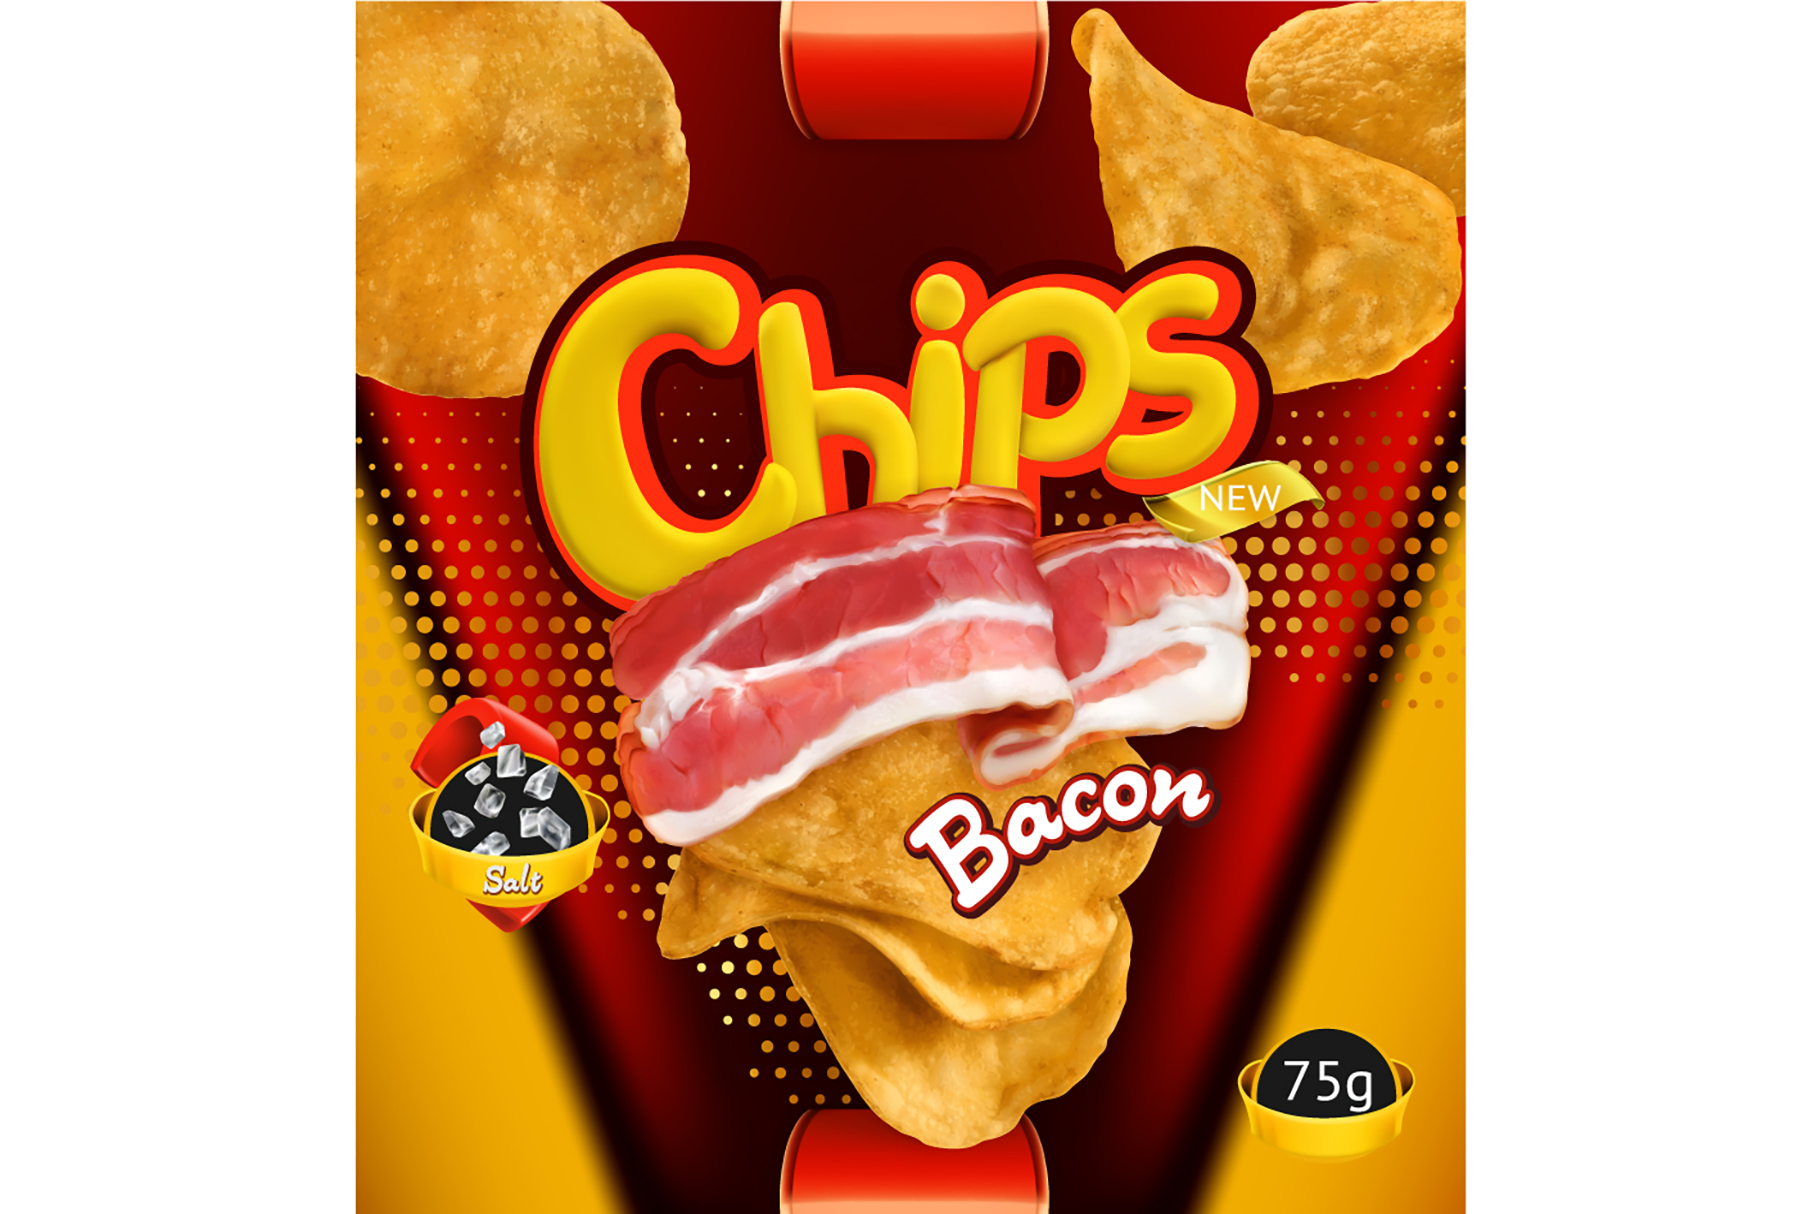 Flavoring additives for chips, spices. Seasonings for snack example image 9